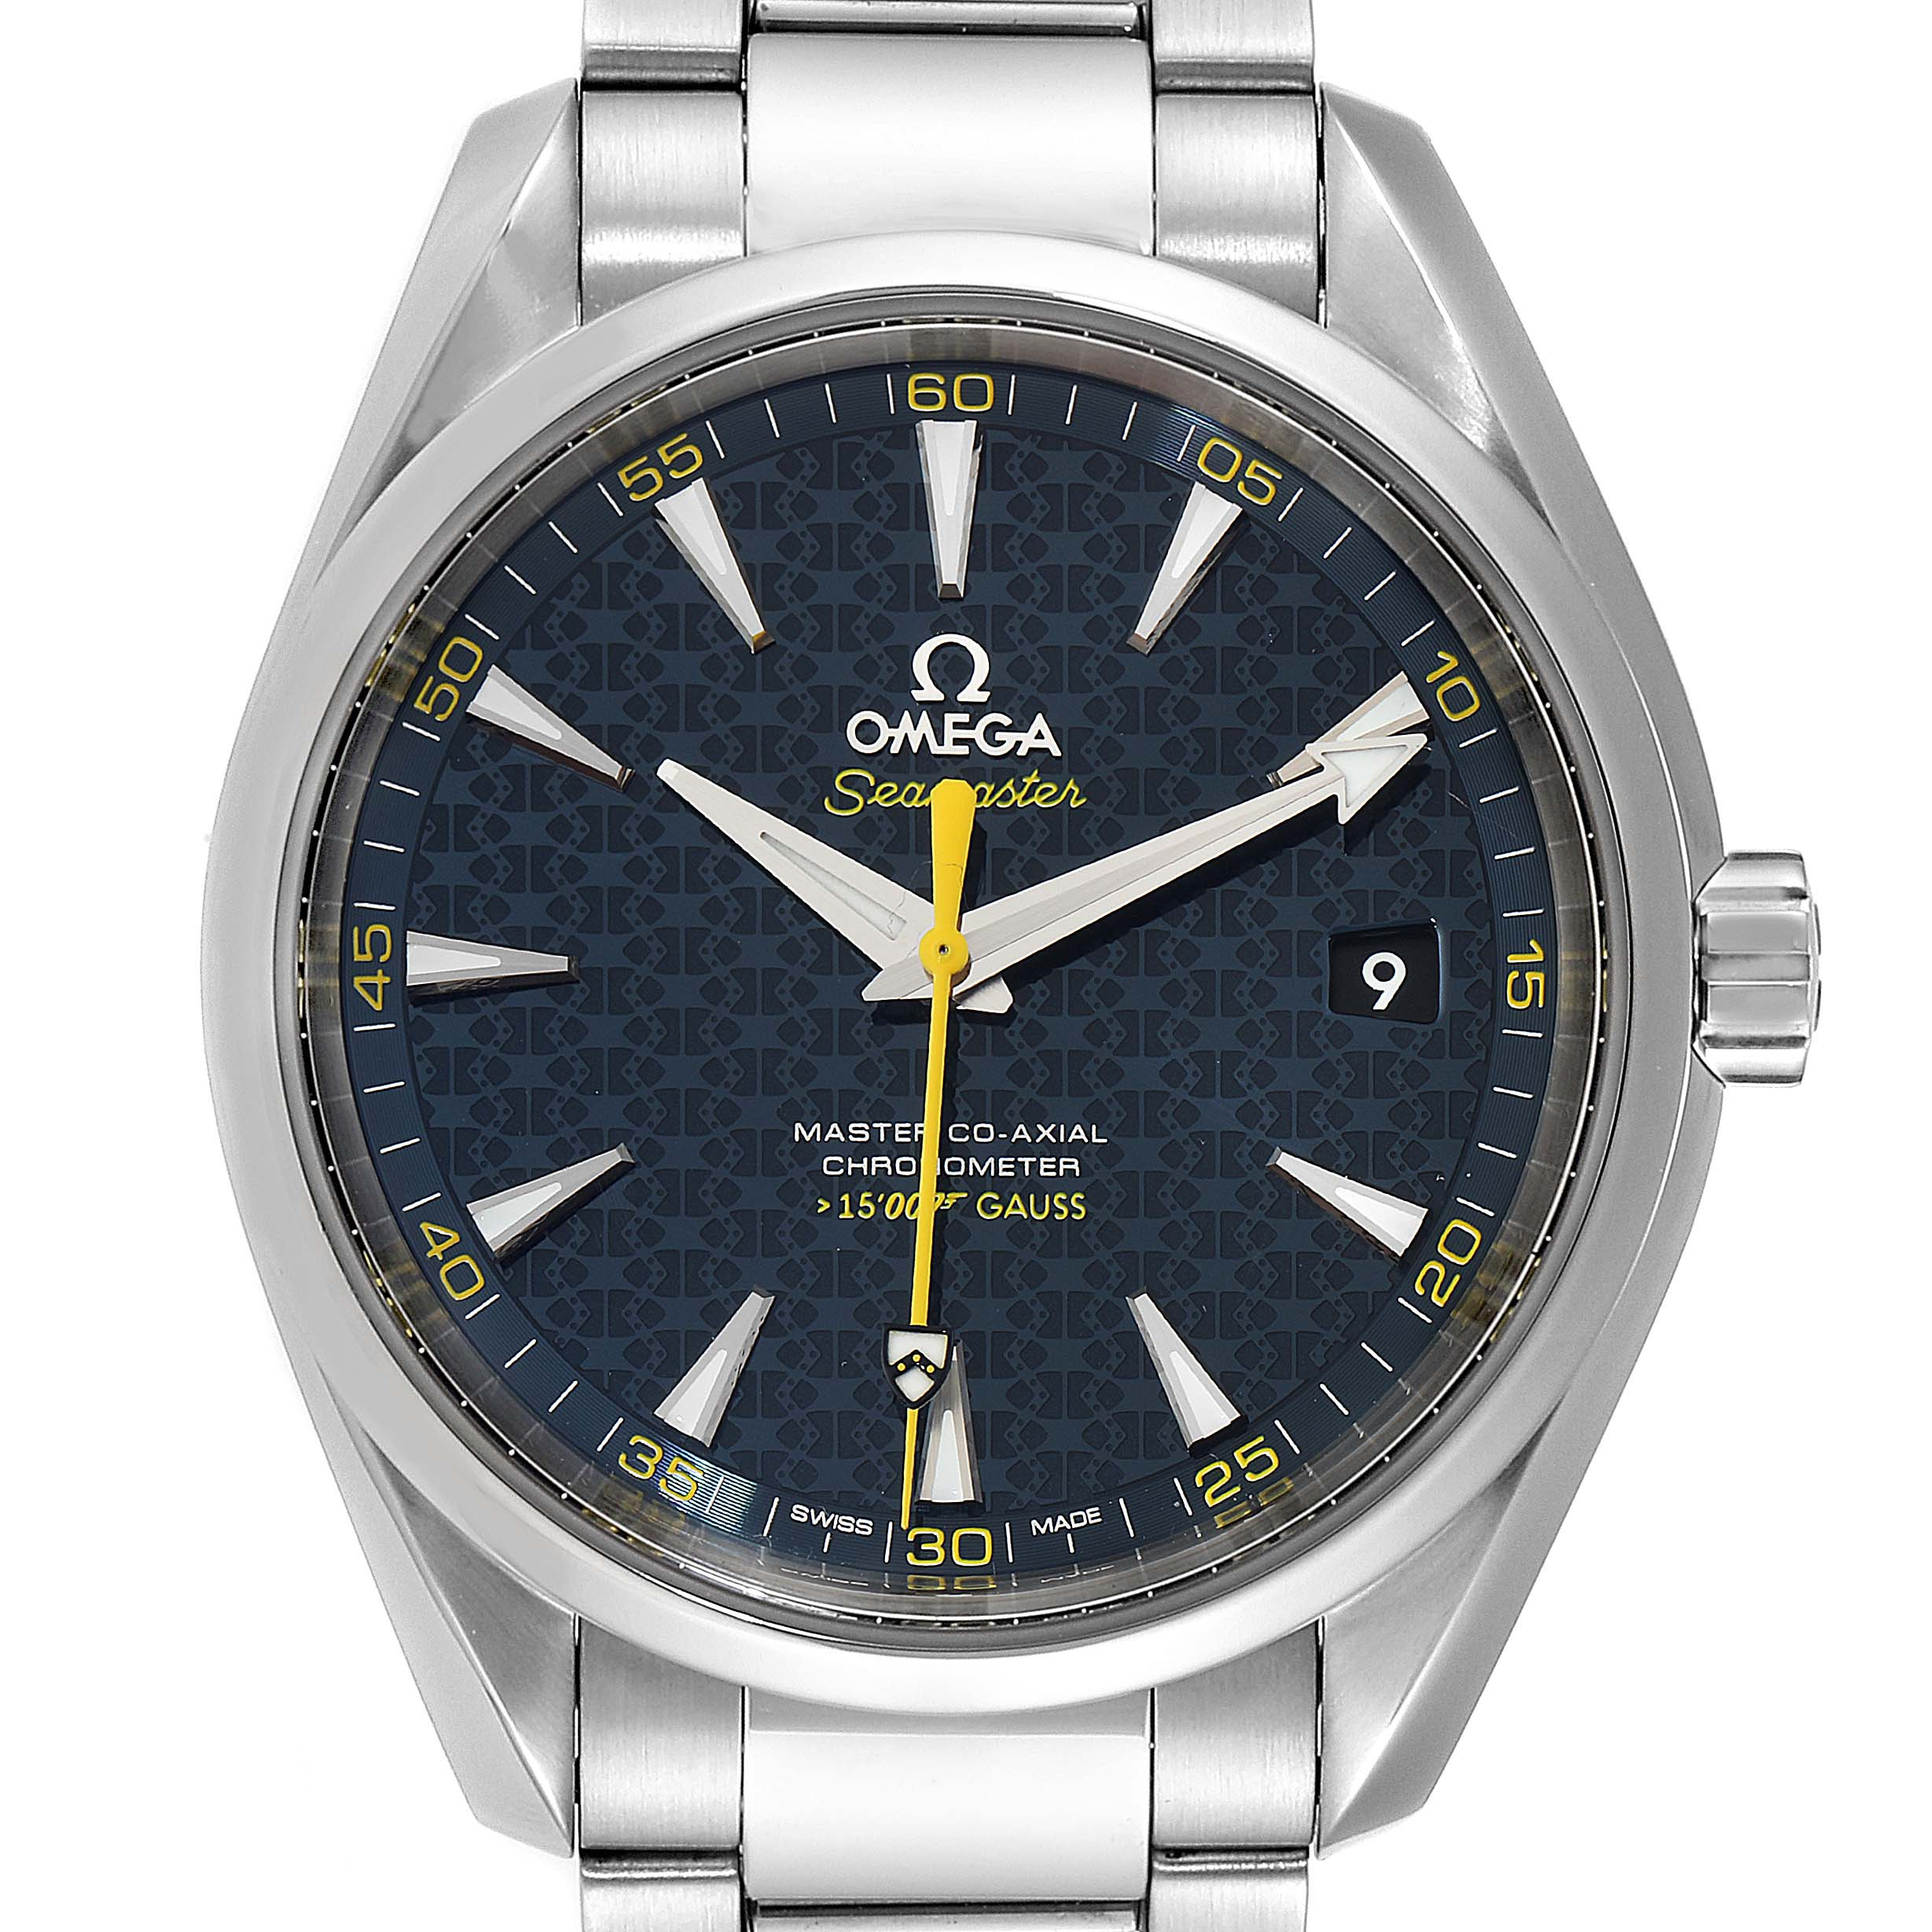 Photo of Omega Seamaster Aqua Terra Spectre Bond LE Watch 231.10.42.21.03.004